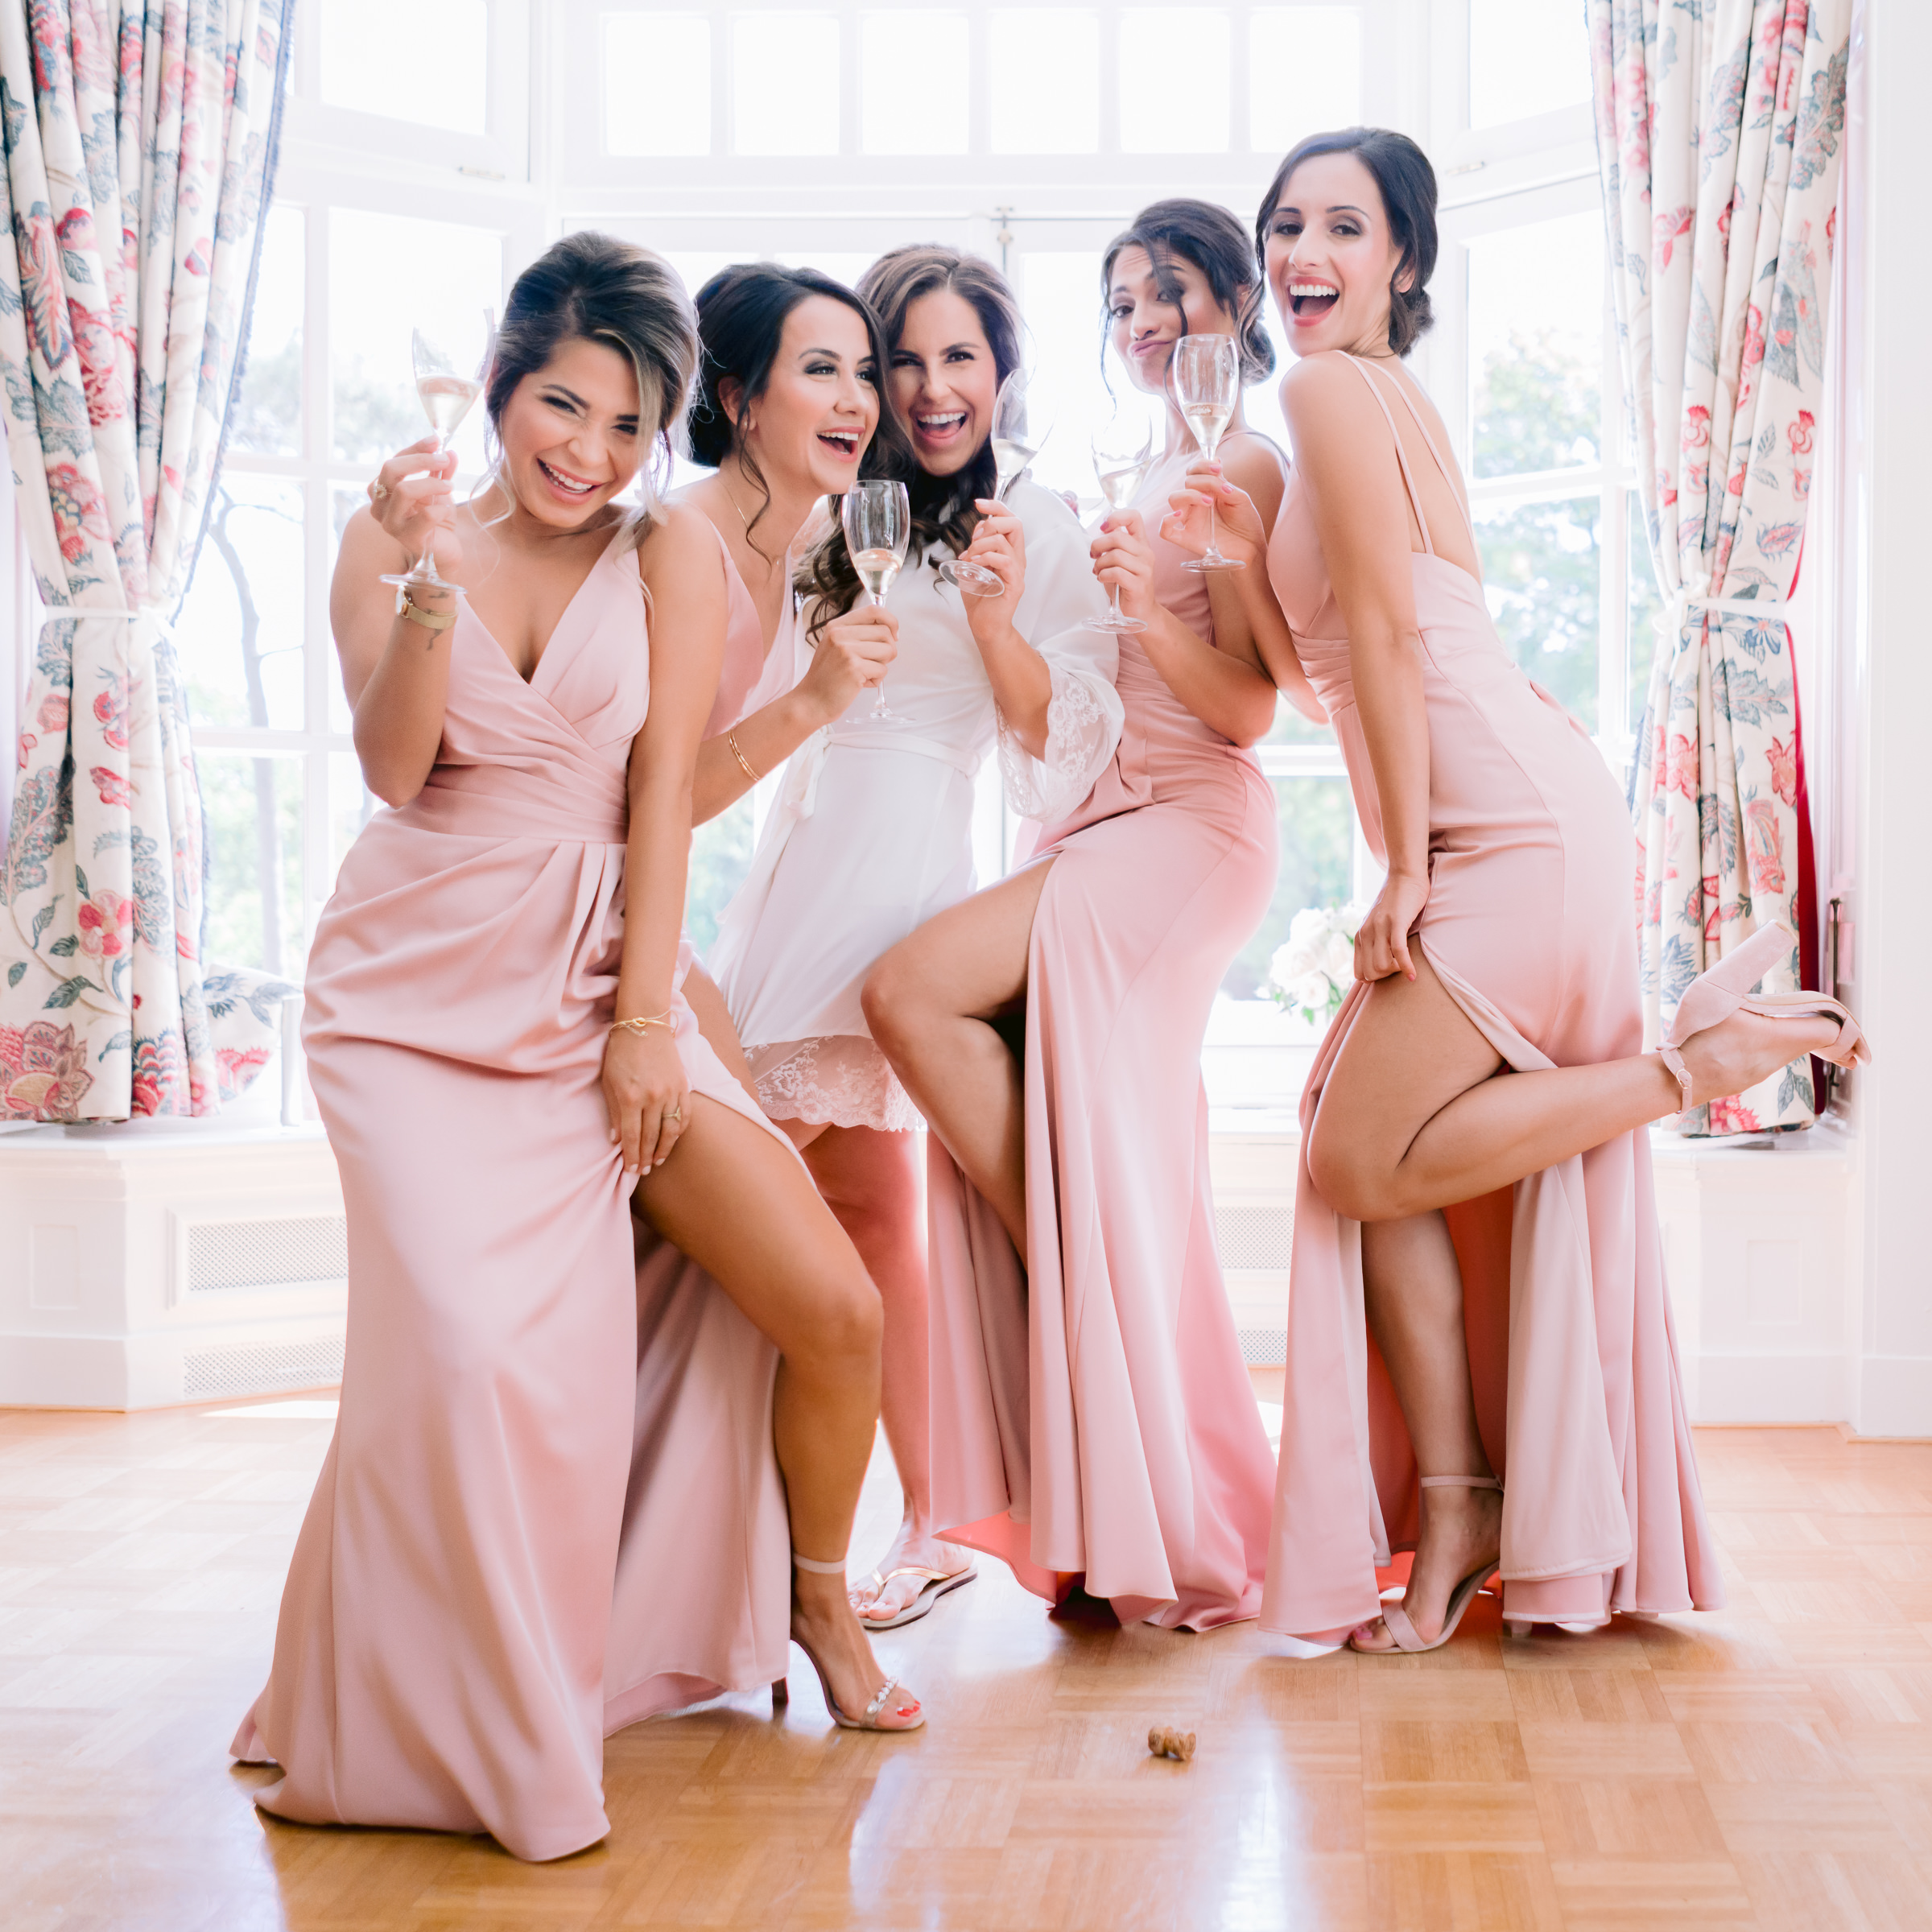 Bride and bridesmaids holding champagne glasses - photo by Peter van der Lingen Wedding Photography